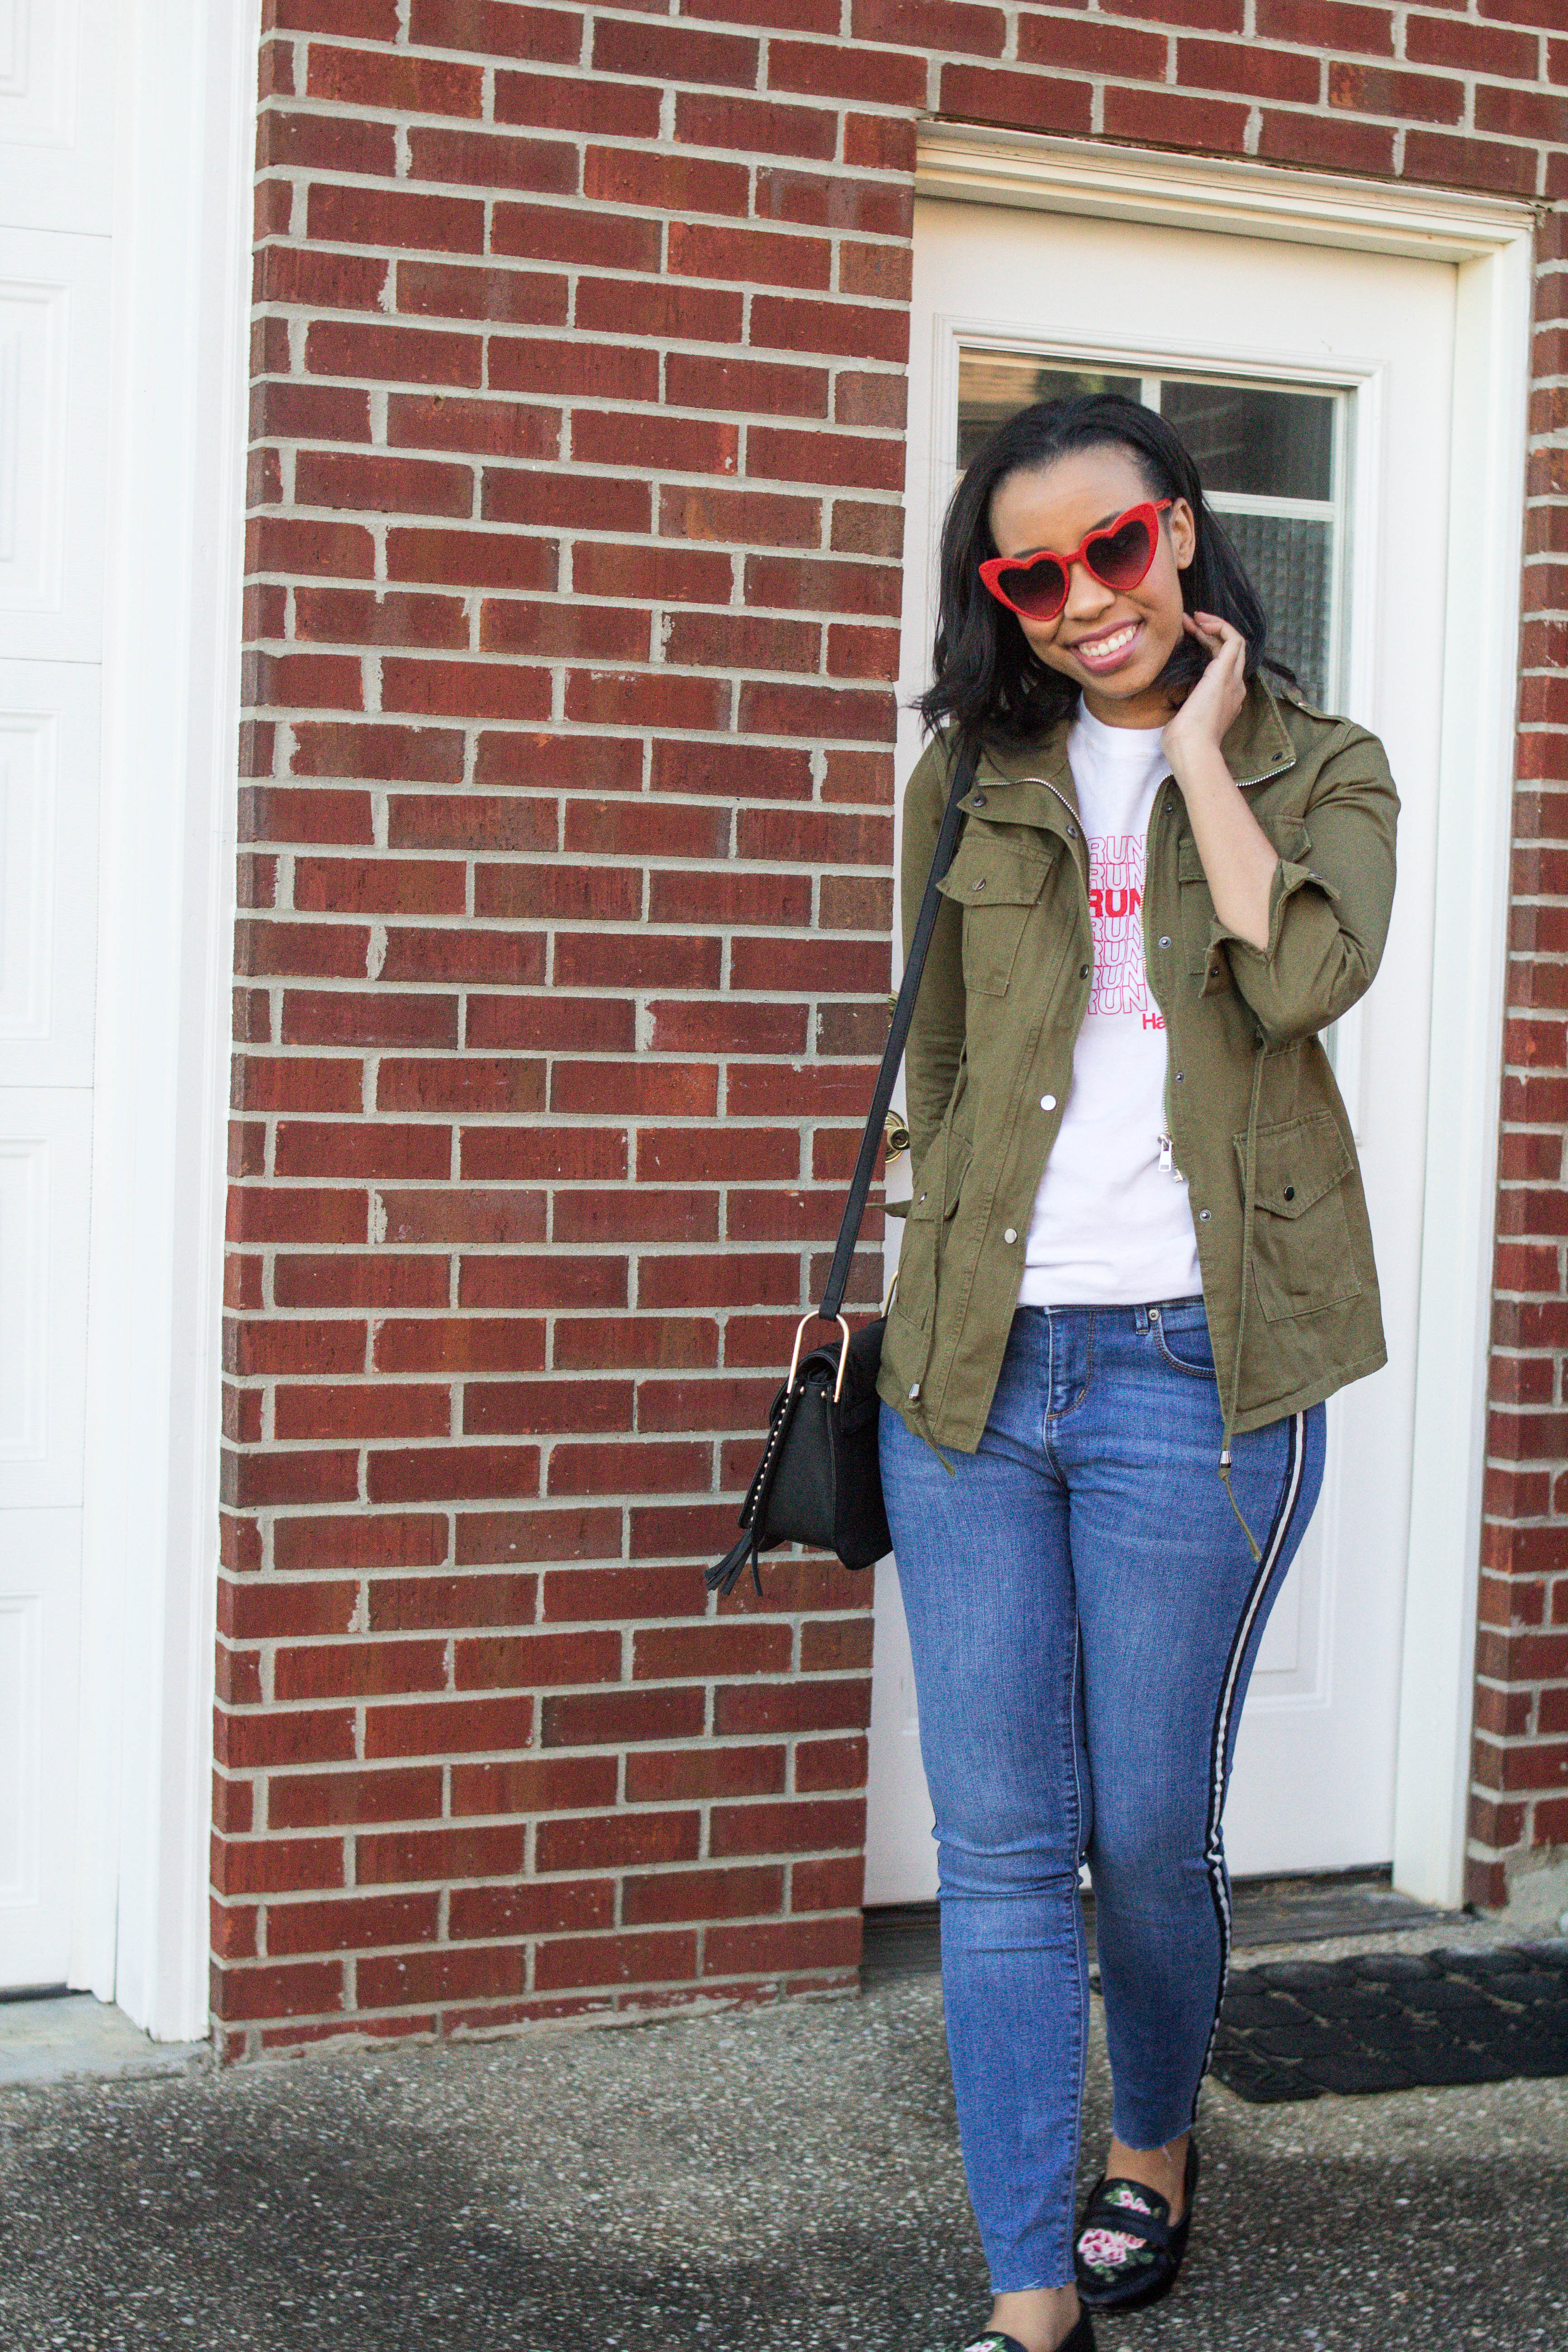 Popular style blogger, What Nicole Wore, shows how to take ten wardrobe staples and create twenty fall outfits with a fall capsule wardrobe. // tuxedo stripe skinny jeans, easy fall outfit ideas, heart sunglasses, red heart sunglasses, target clothing ideas